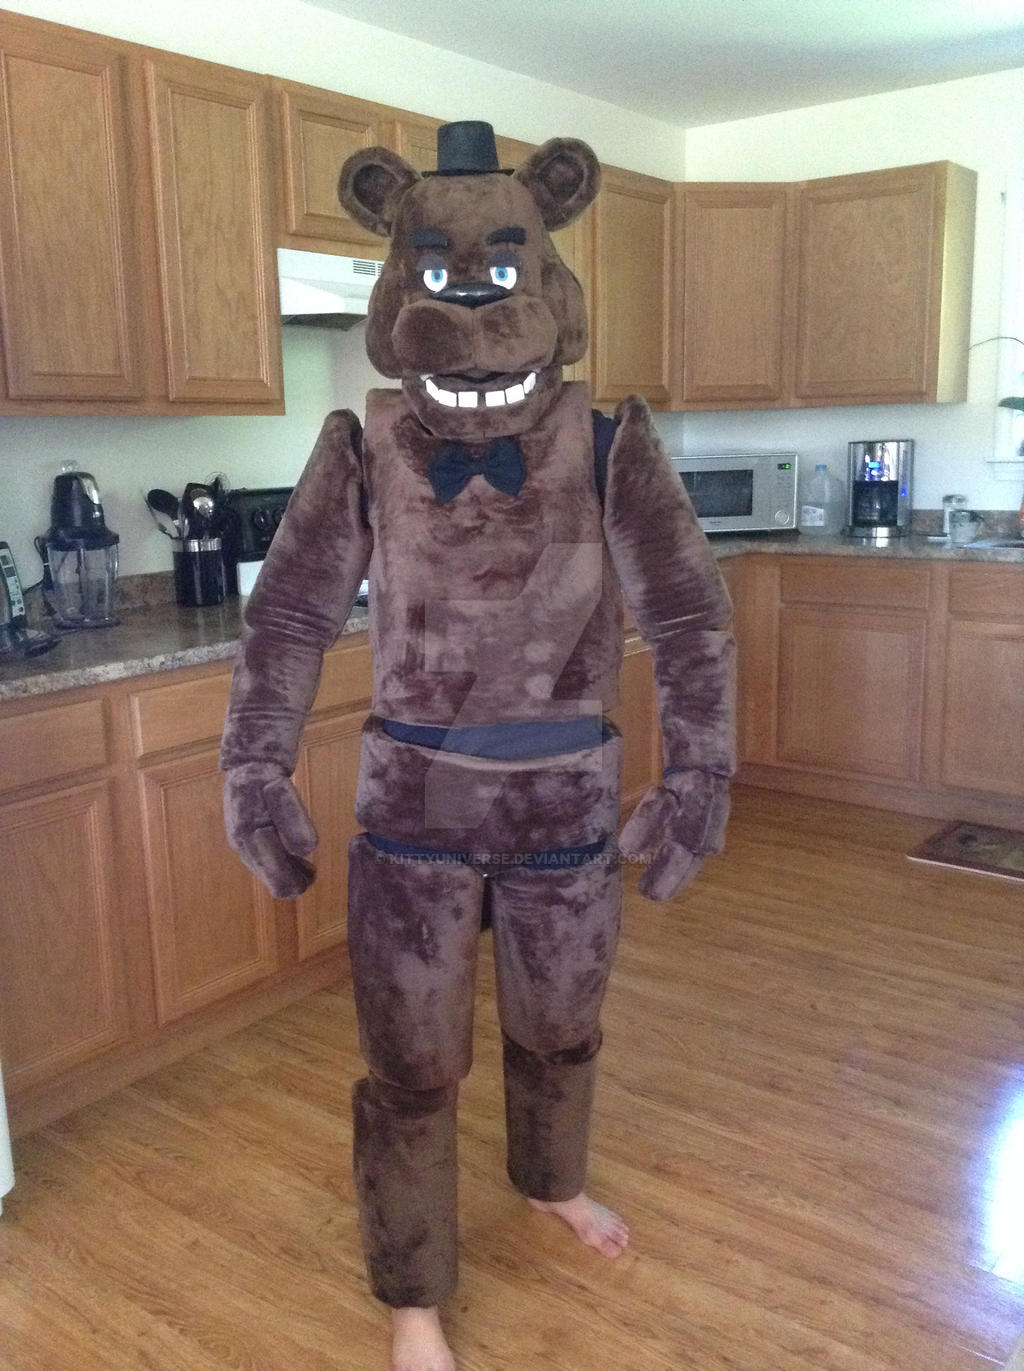 Fnaf bonnie costume for sale - Freddy Fazbear Costume By Kittyuniverse Freddy Fazbear Costume By Kittyuniverse